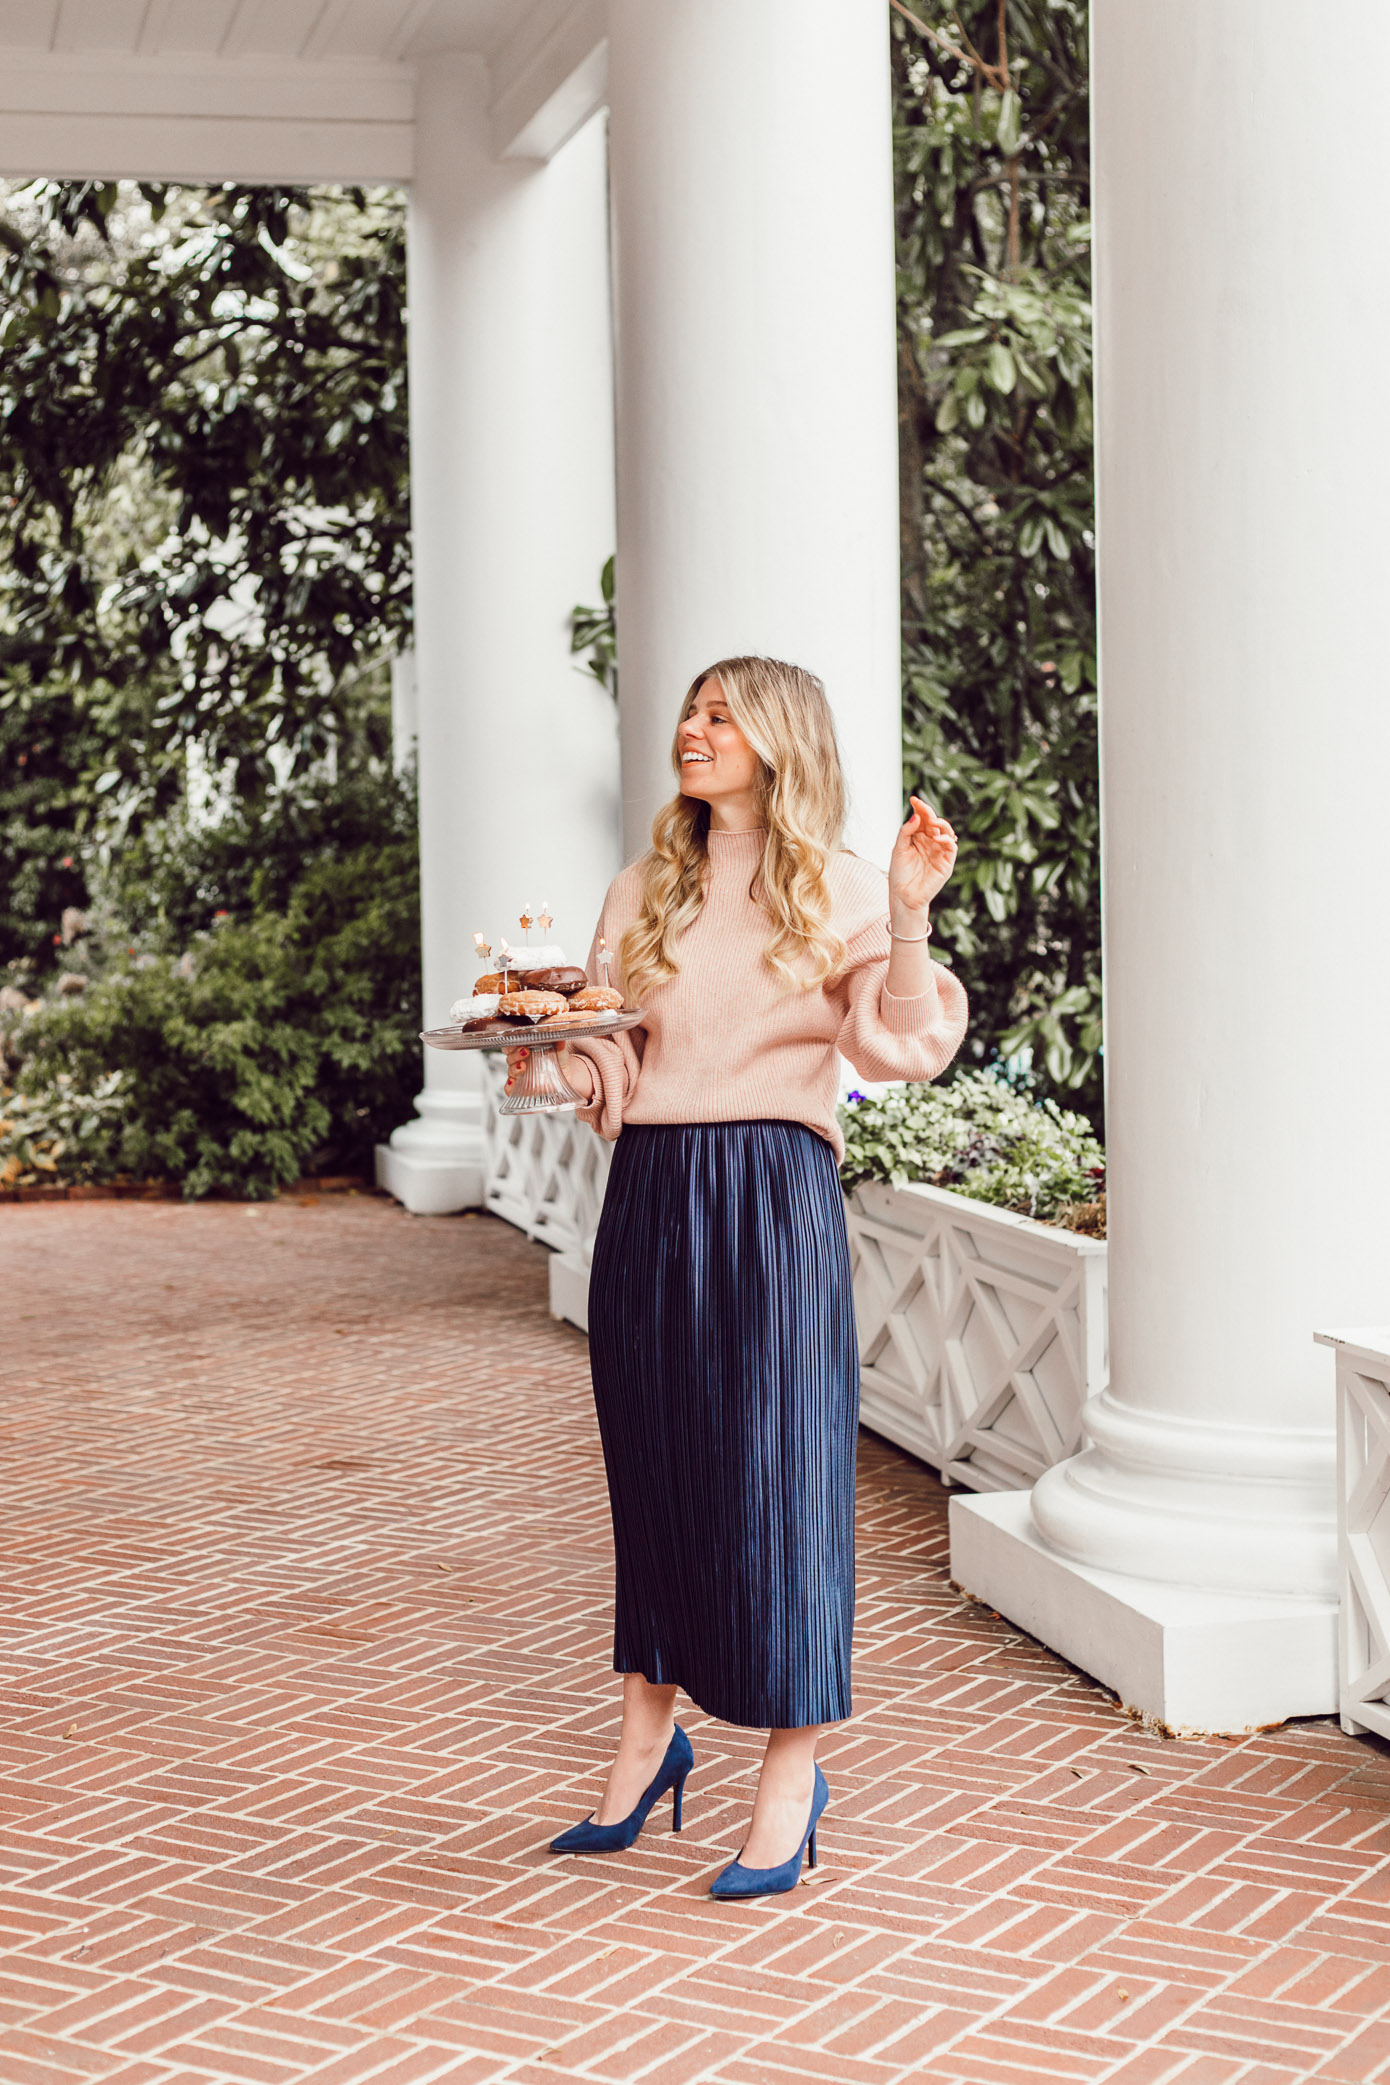 29 Life Lessons Learned featured on Louella Reese Life & Style Blog for her 29th Birthday | Donut Cake